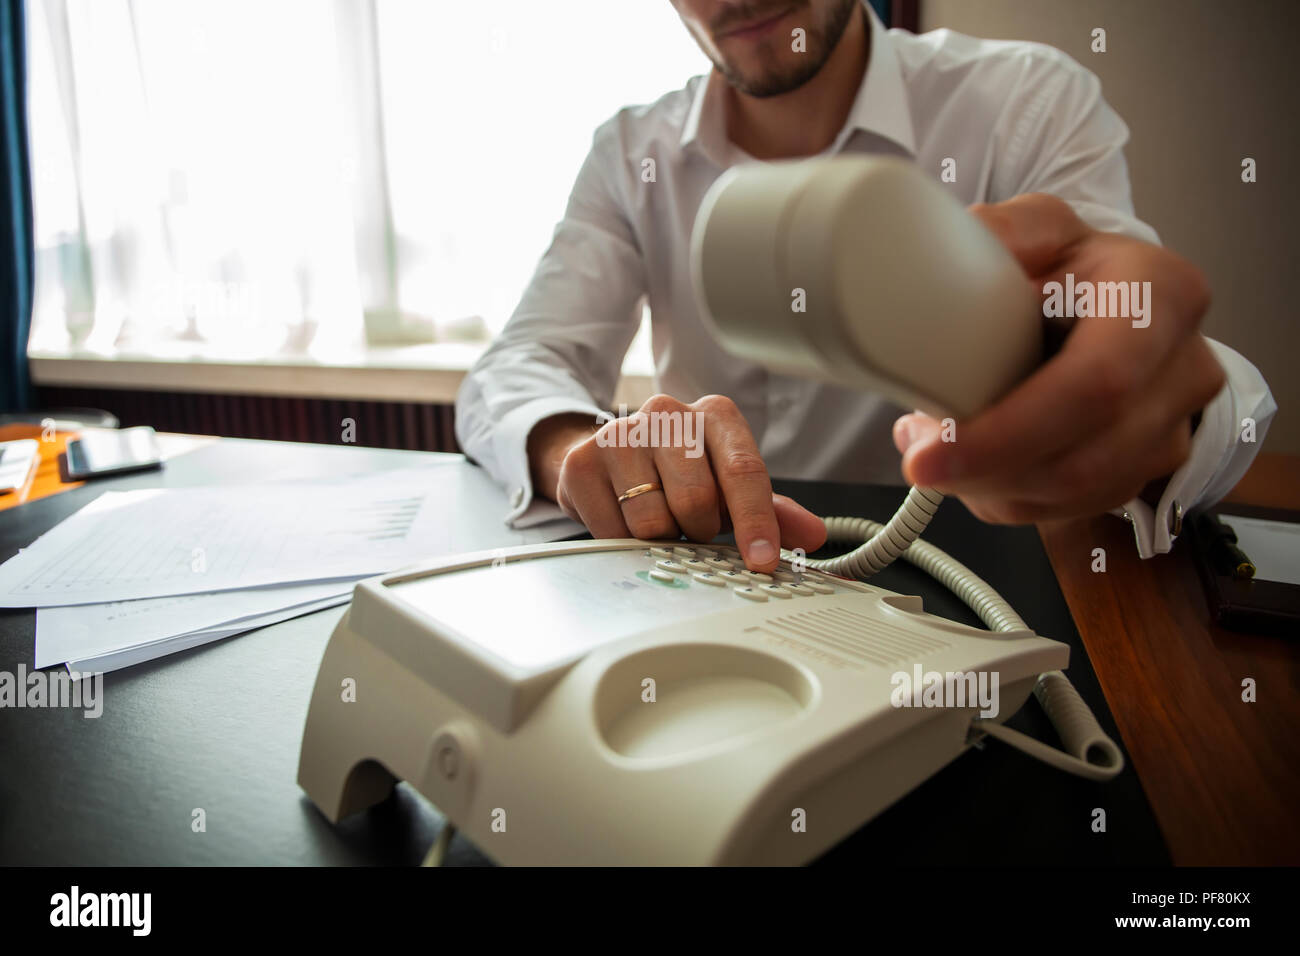 Businessman dialing a telephone number in order to make a phone call. - Stock Image